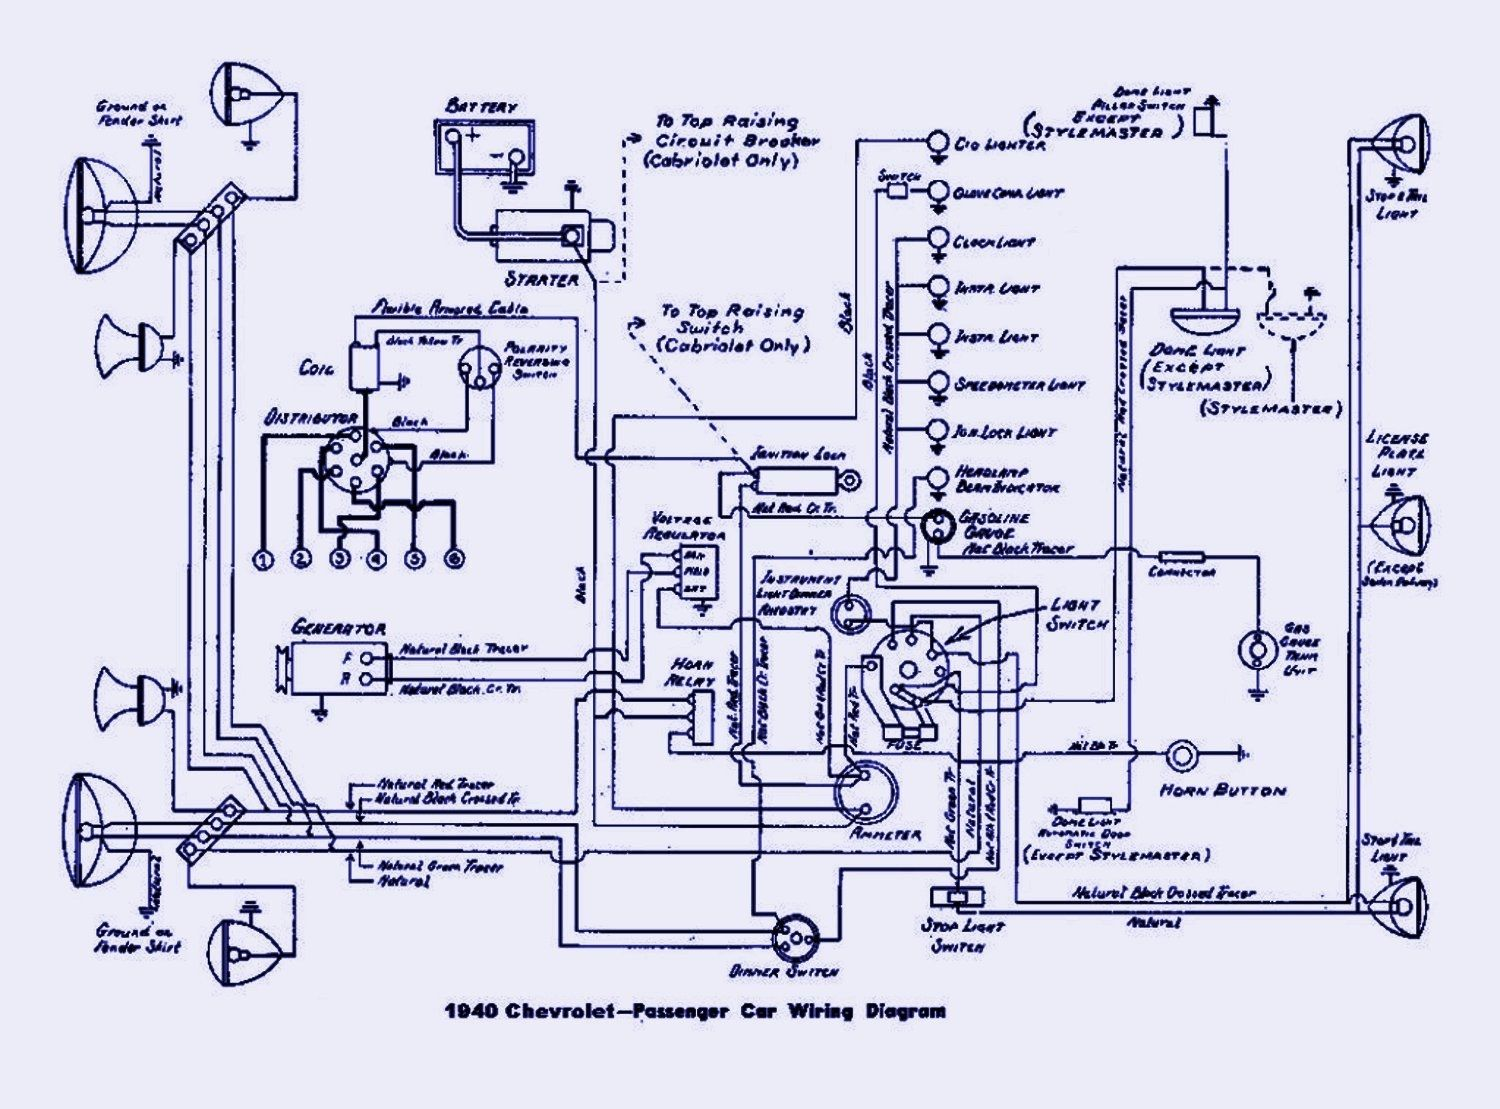 Auto Electrical Wiring Diagram | Hastalavista throughout ... on